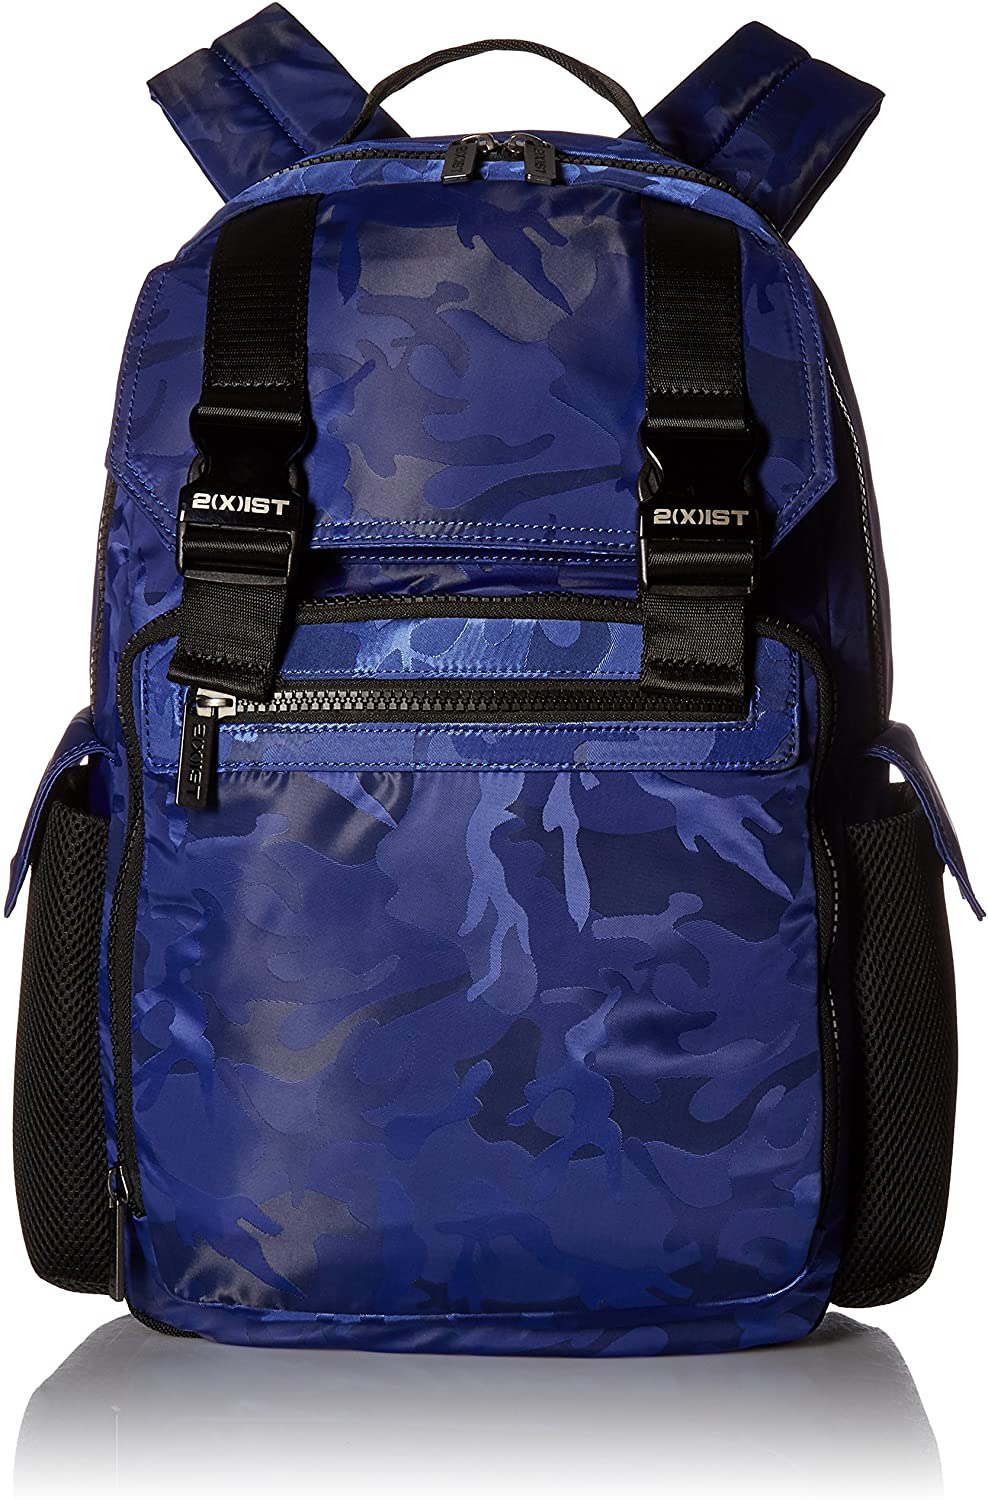 2(X) ist Men's Nylon Backpack, Cobalt Camo, One Size